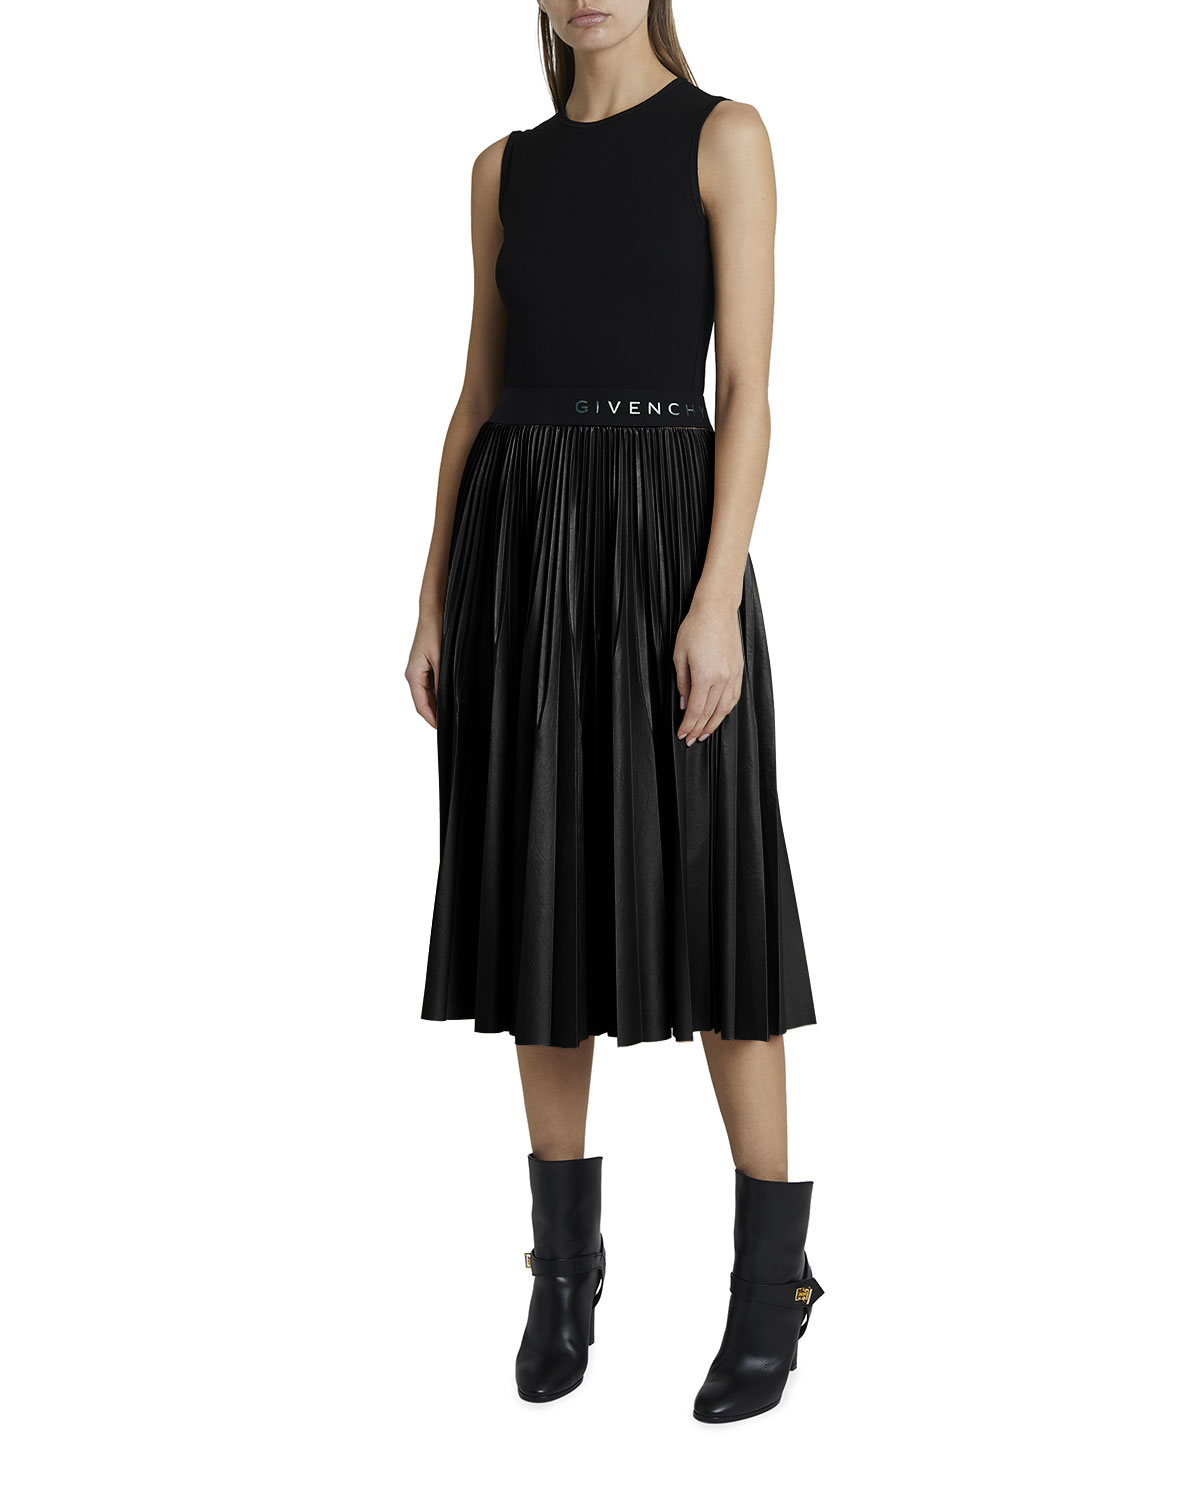 Givenchy Contrast Pleated Skirt Dress